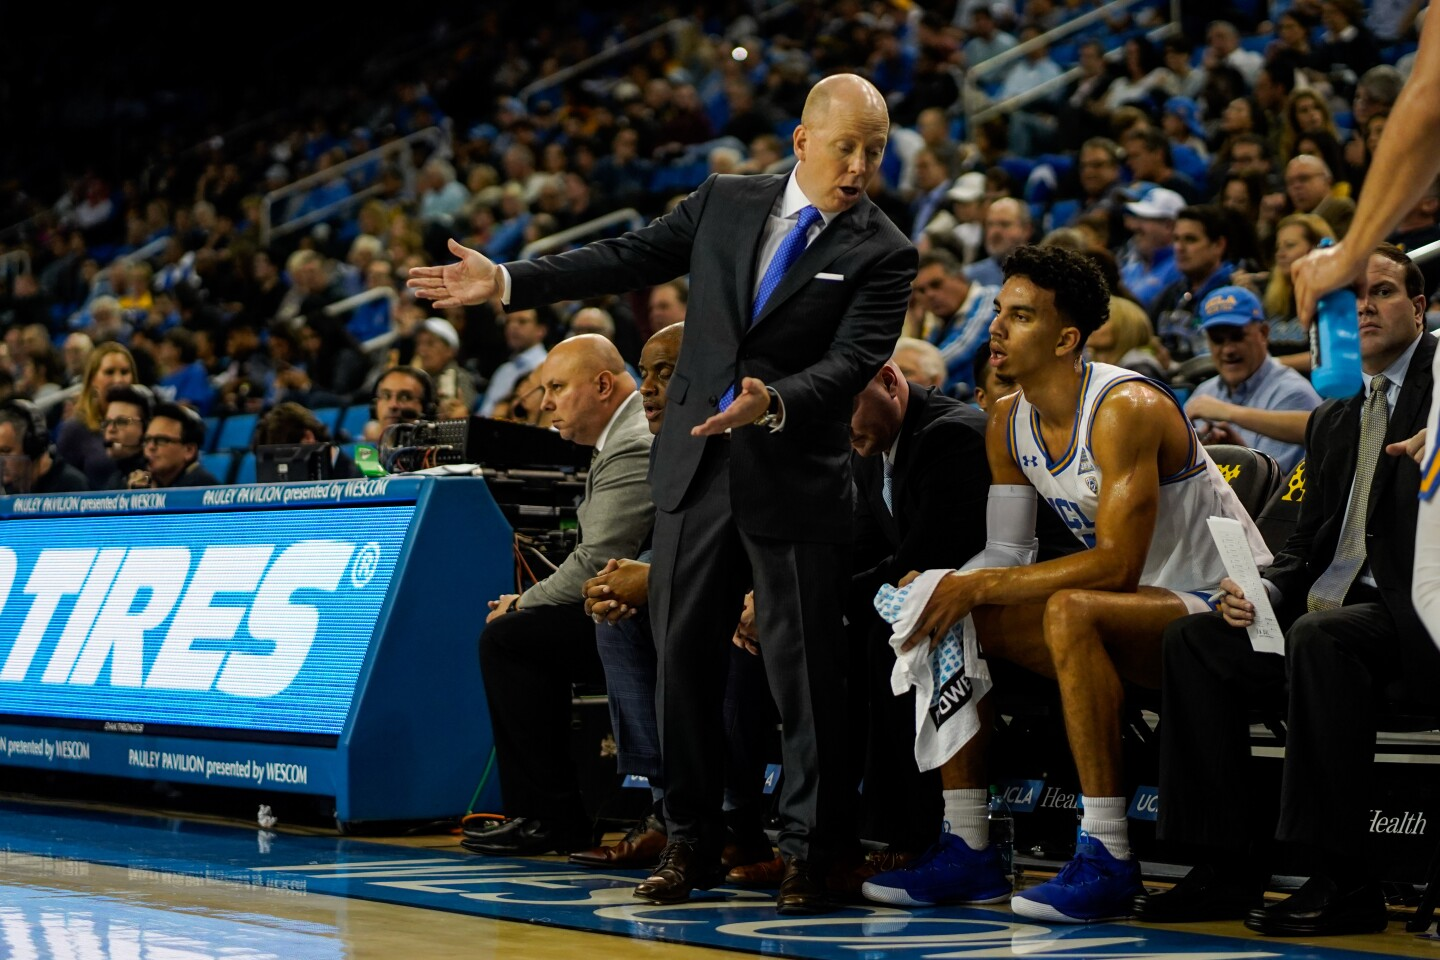 LOS ANGELES, CALIF. - NOVEMBER 06: UCLA Bruins head coach Mick Cronin talks with guard Chris Smith (5) during the second half of a NCAA basketball game between the UCLA Bruins and the Long Beach State 49ers at UCLA Pauley Pavillion on Wednesday, Nov. 6, 2019 in Los Angeles, Calif. (Kent Nishimura / Los Angeles Times)